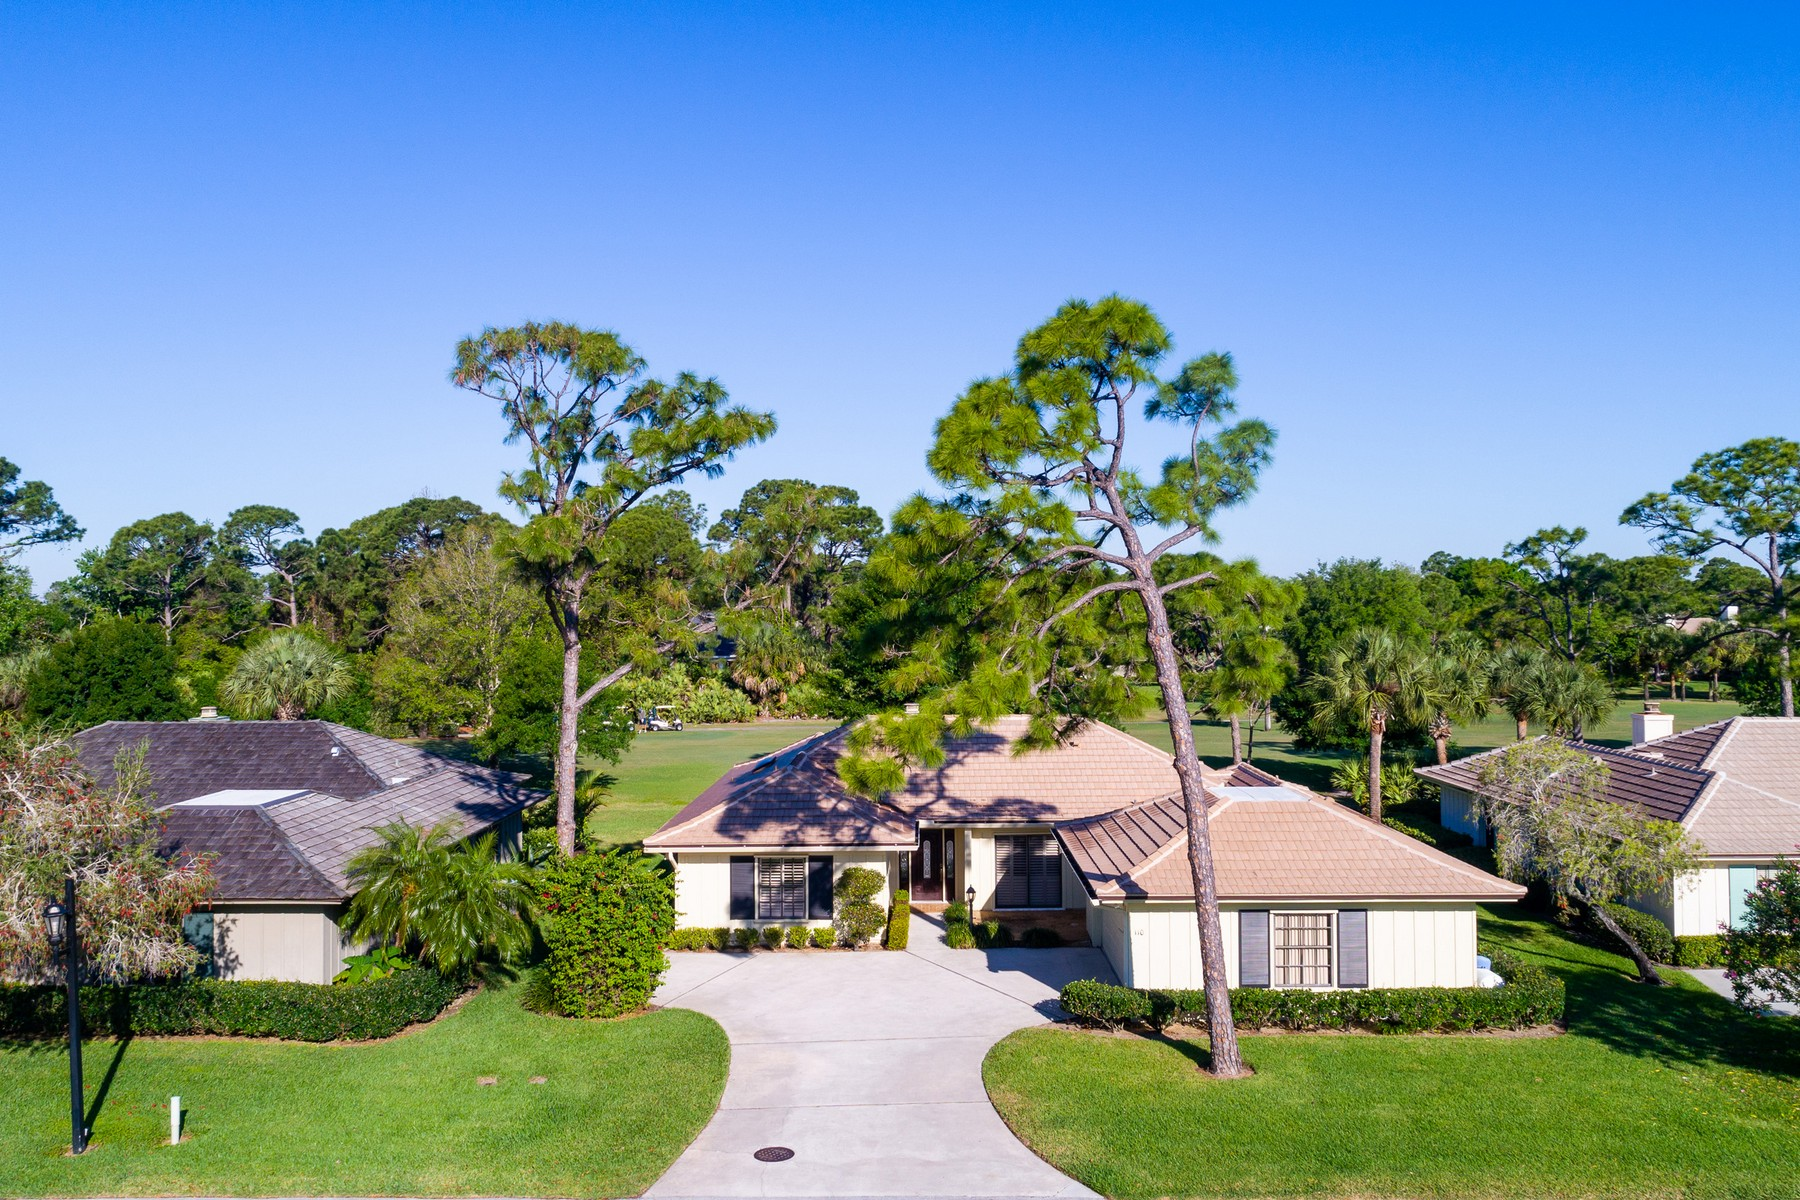 Property for Sale at Beautifully Updated Golf VIlla 110 Prestwick Circle Vero Beach, Florida 32967 United States